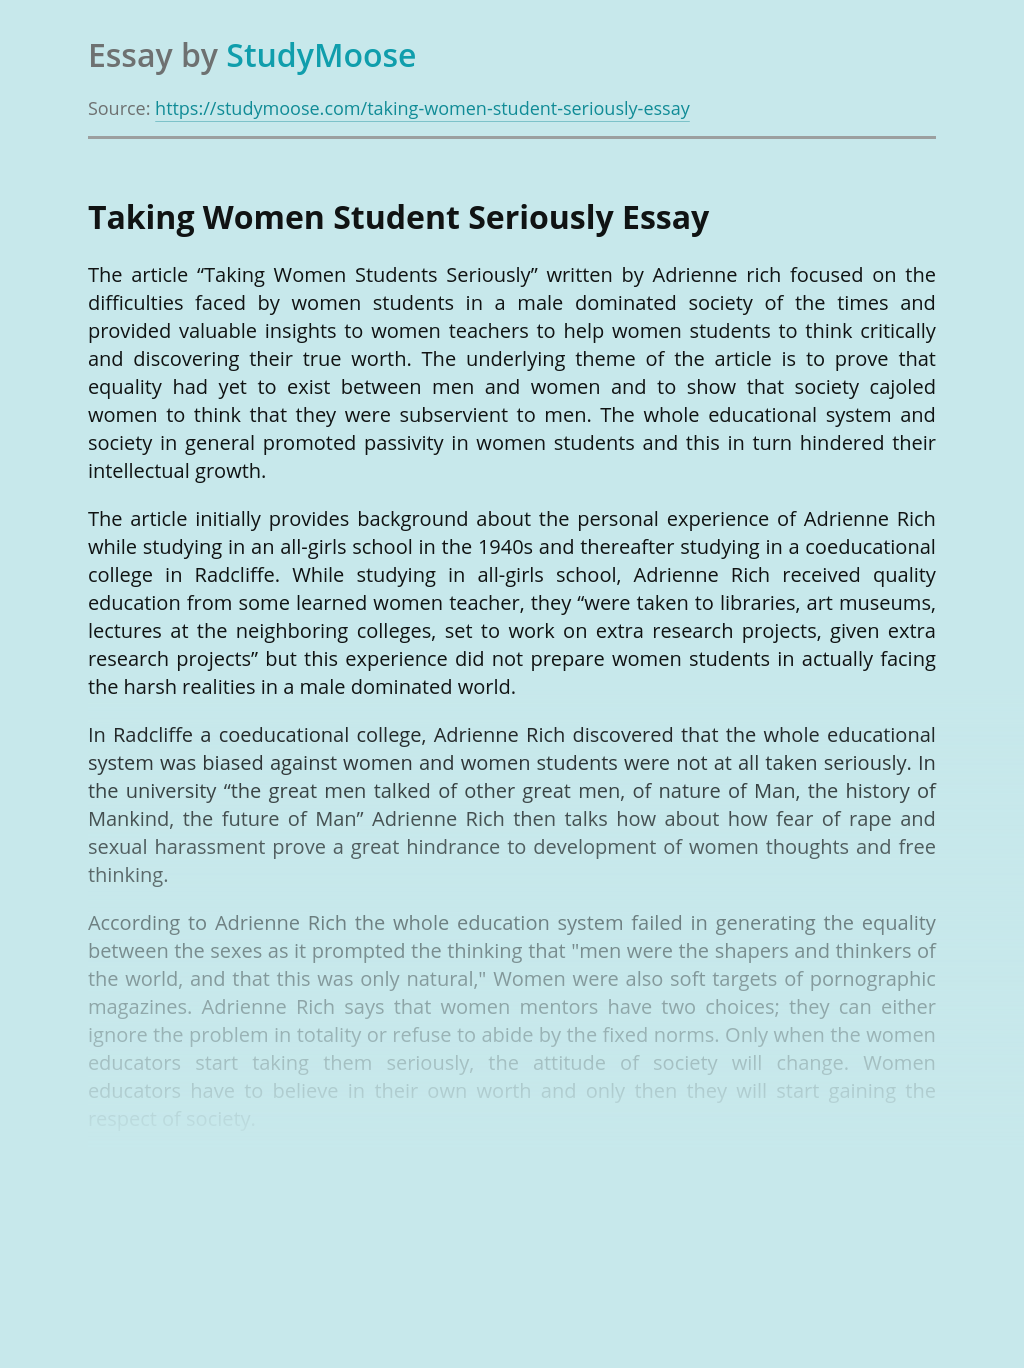 Taking Women Student Seriously